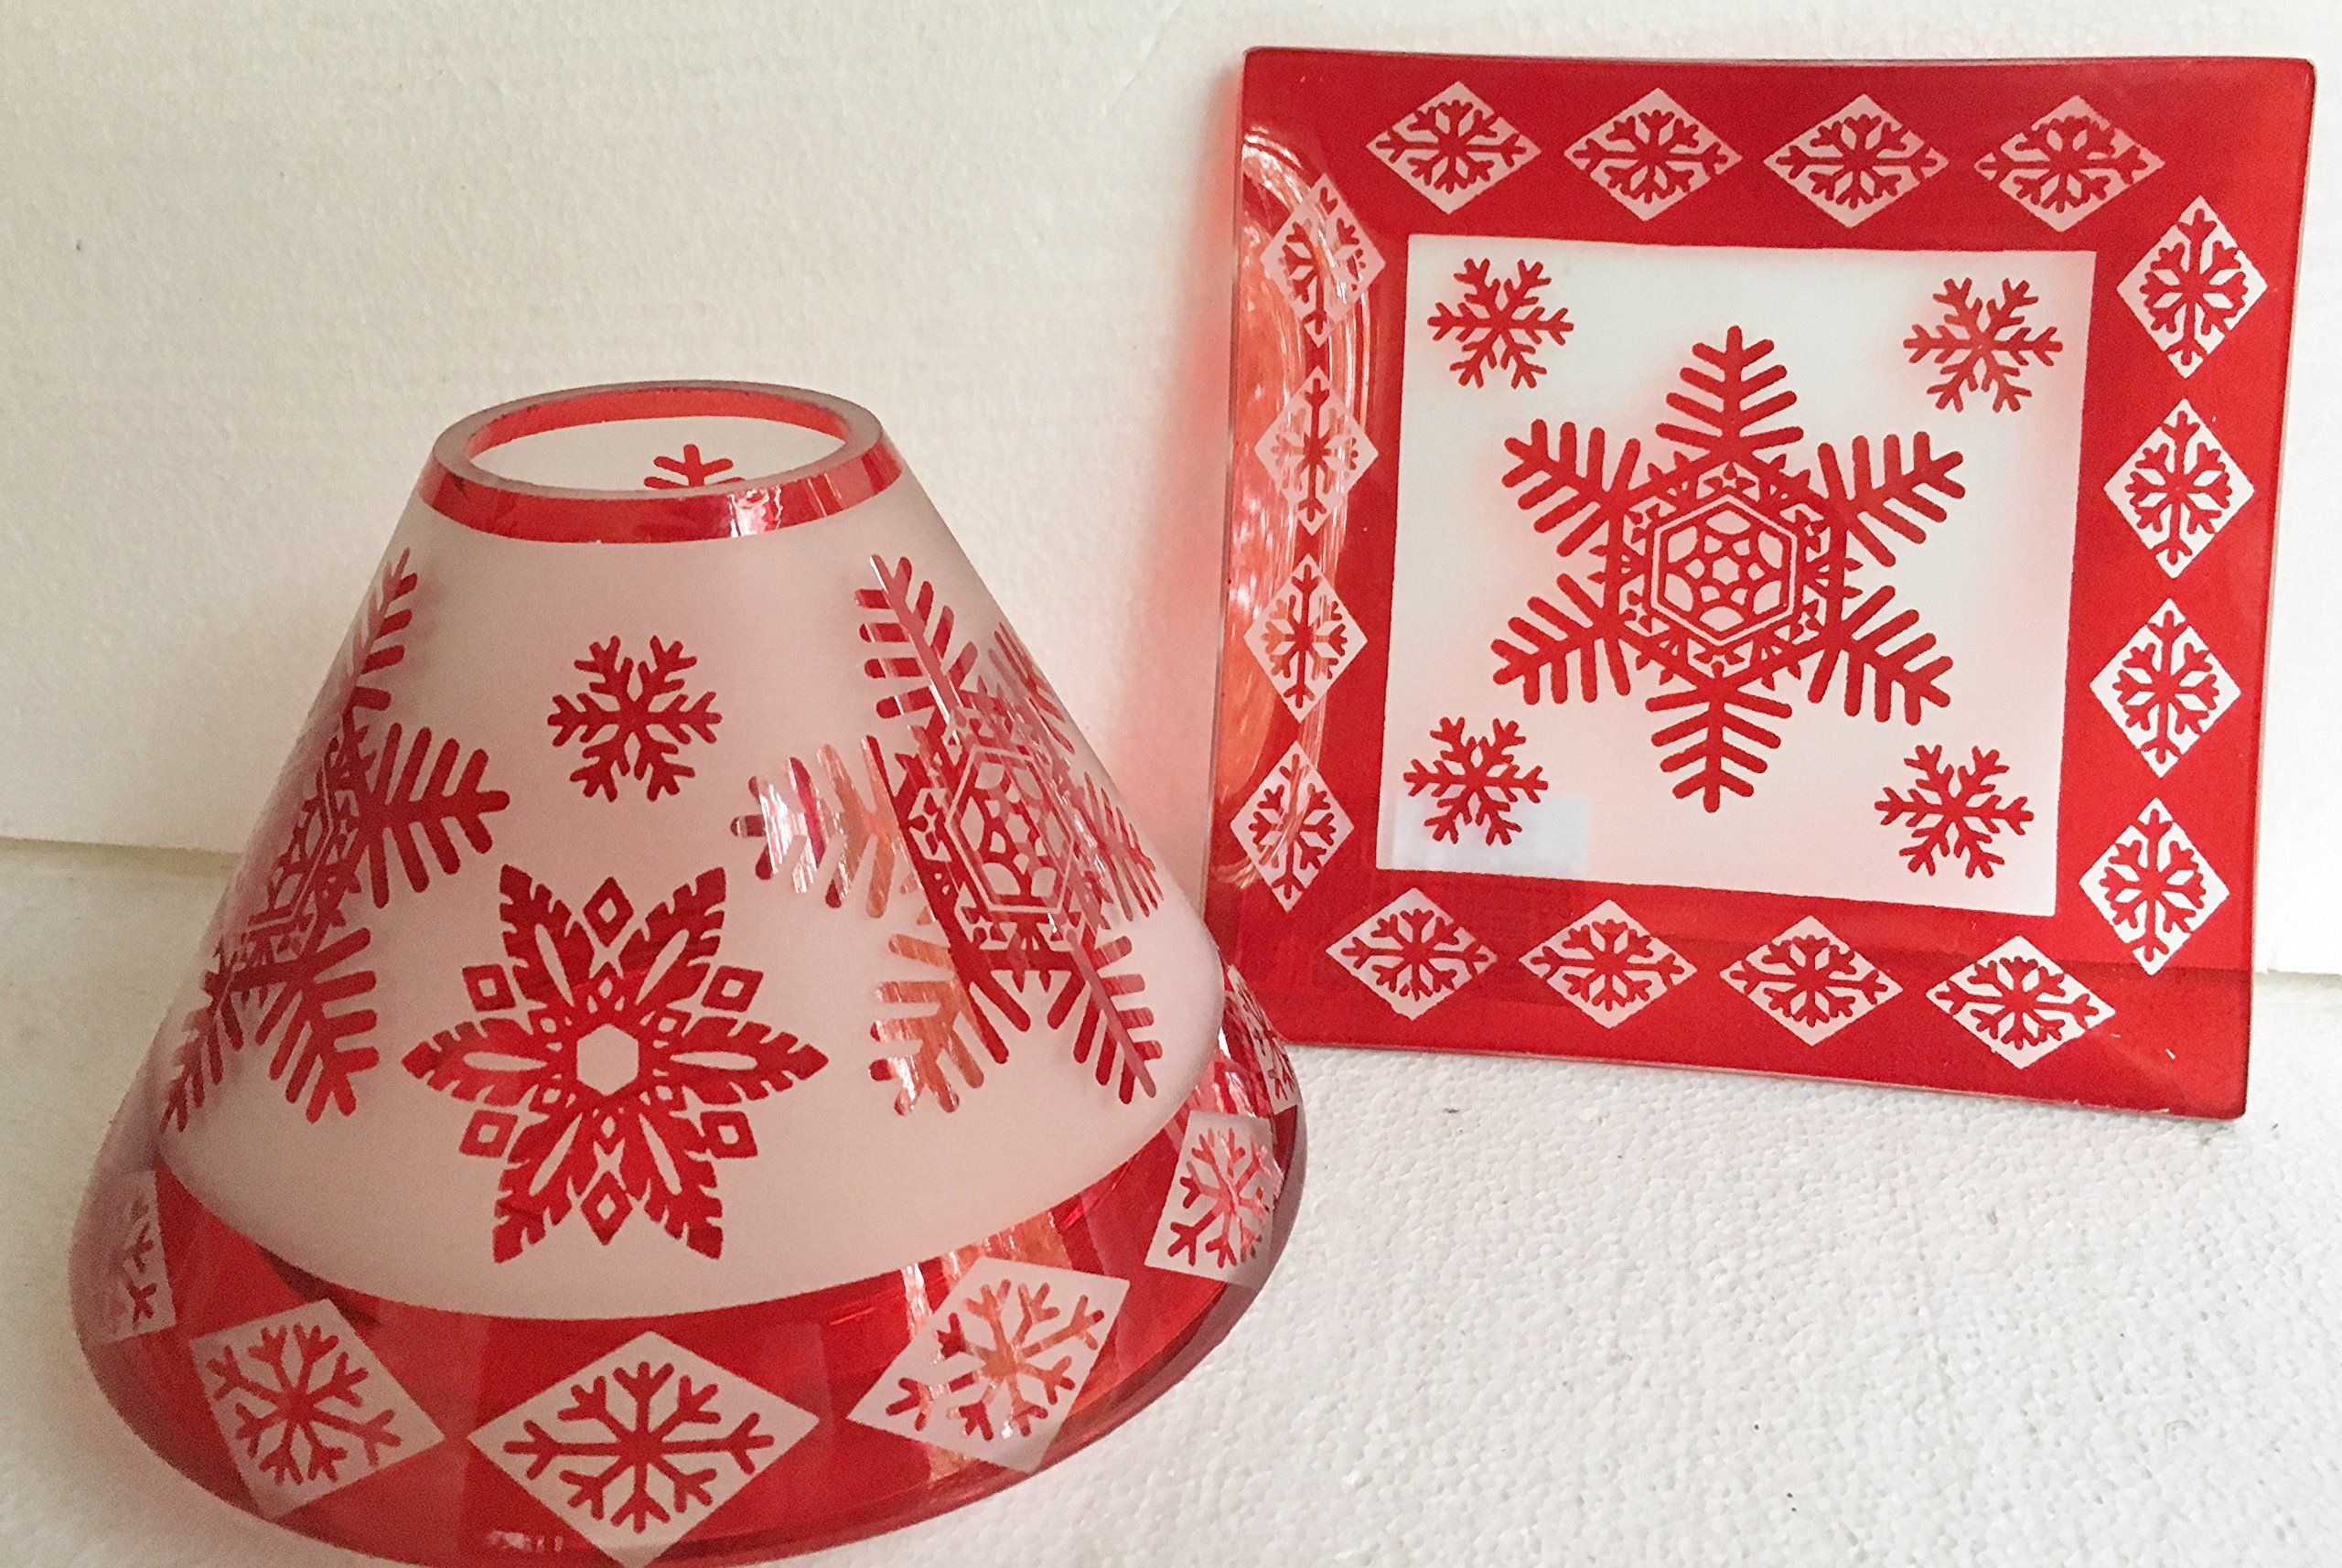 Yankee Candle Red Star Snowflake Holiday Jar Candle Shade Topper and Tray/Plate